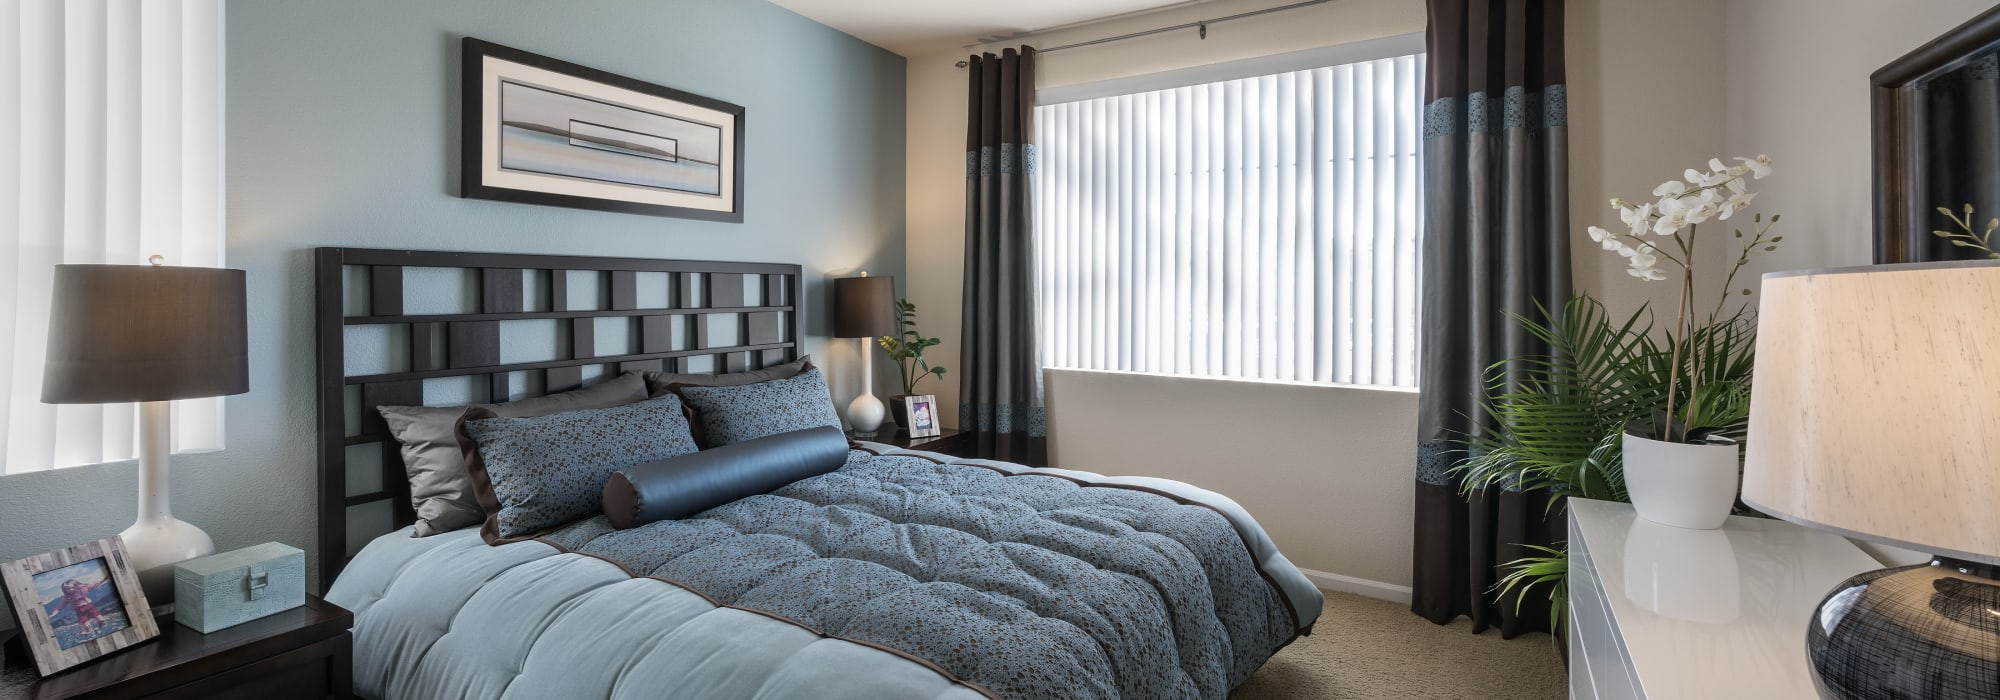 Apartments with naturally lit bedrooms at Azul at Spectrum in Gilbert, Arizona